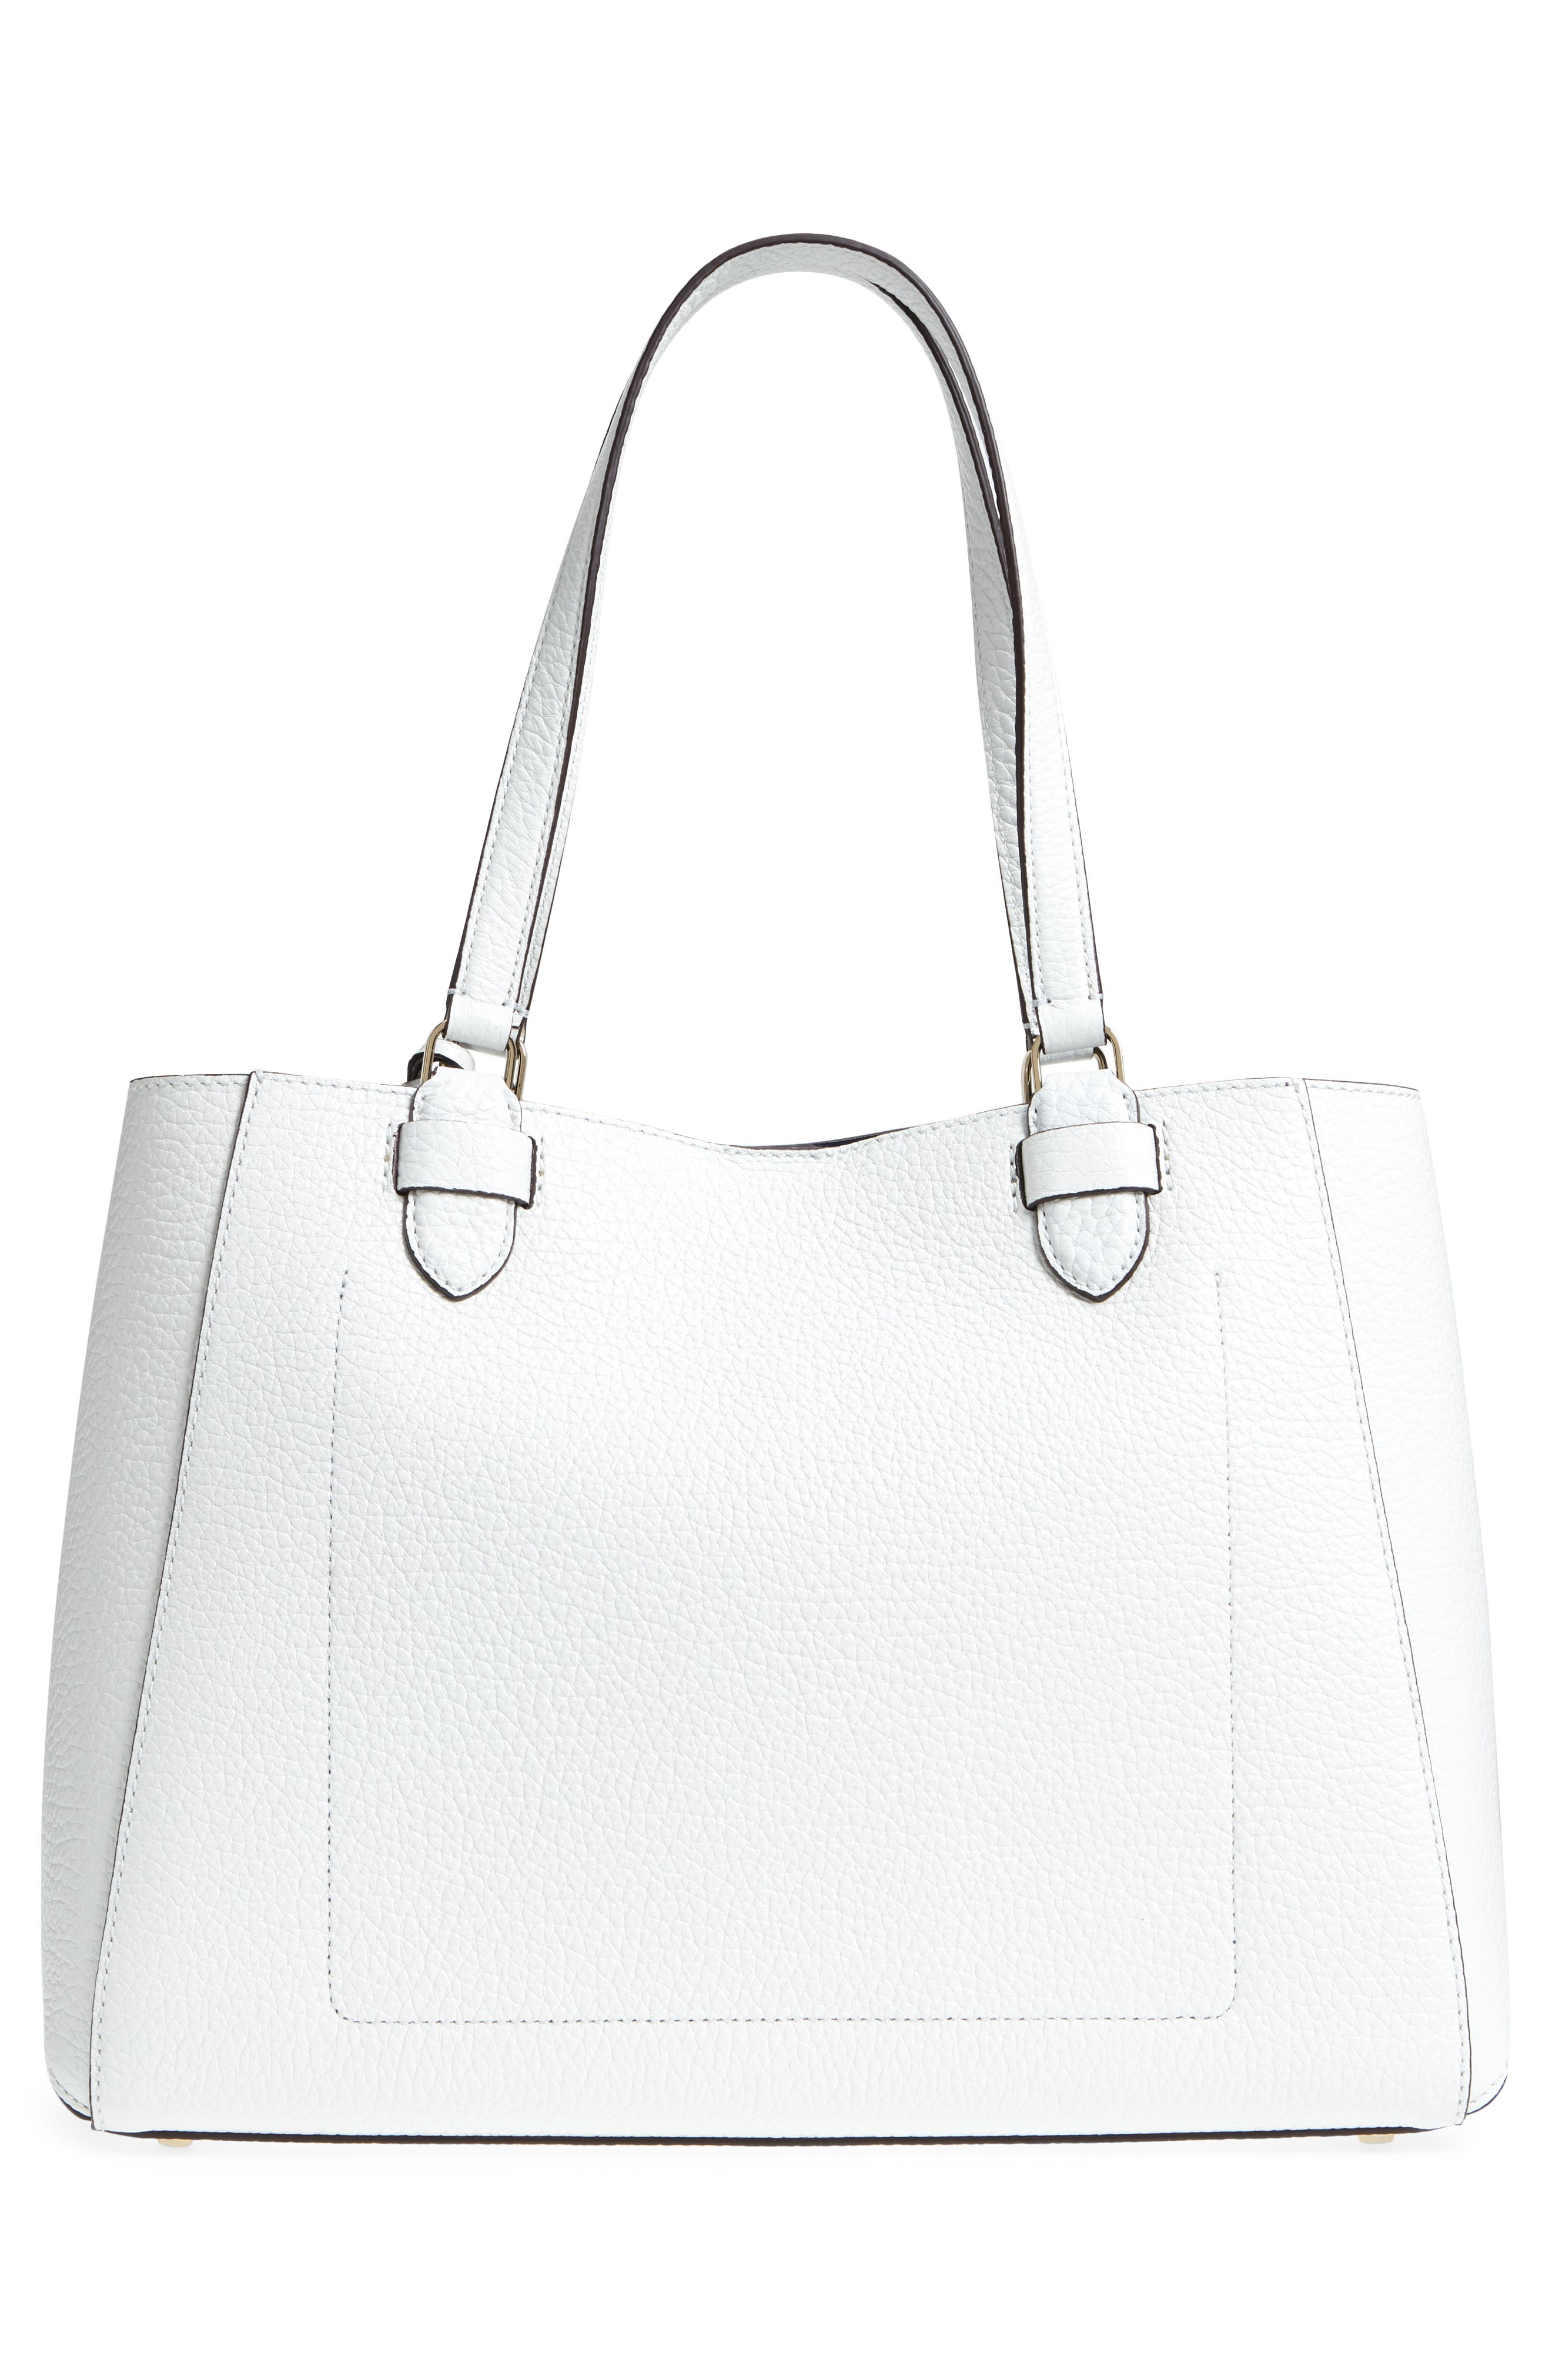 carter street - tyler leather tote,                             Alternate thumbnail 4, color,                             Bright White